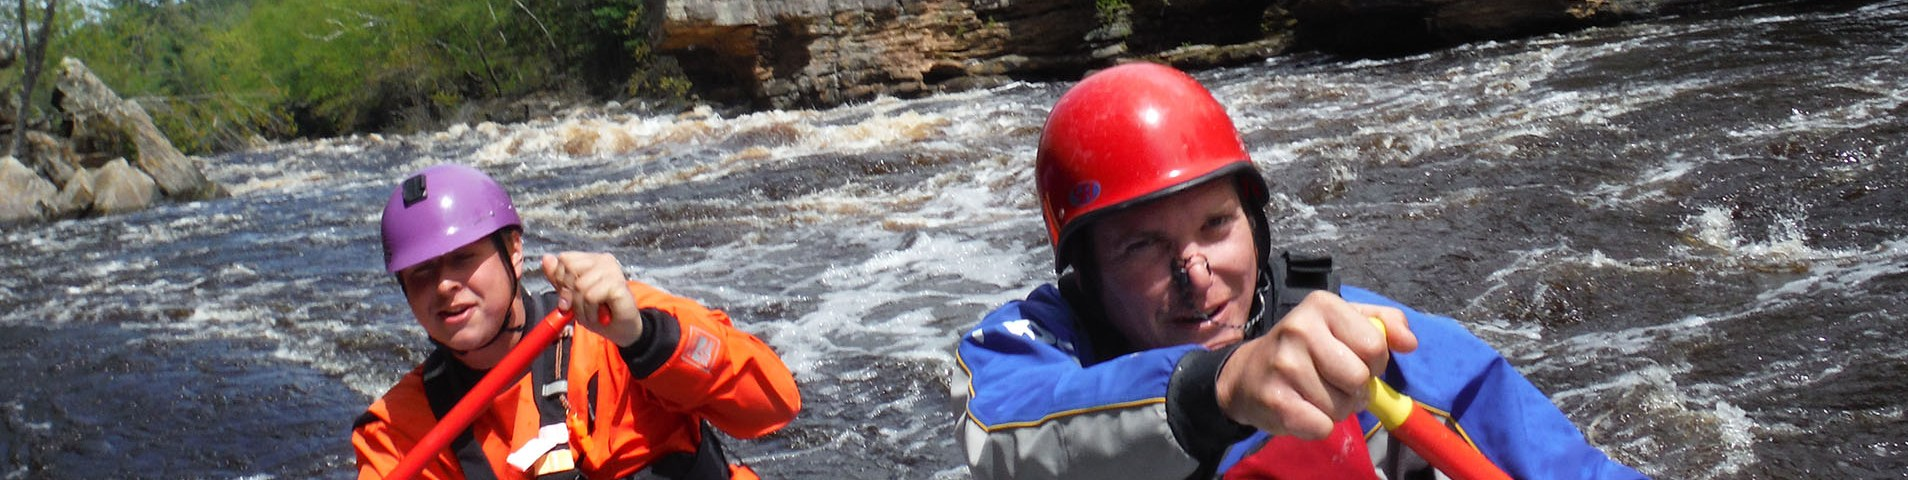 minnesota whitewater rafting on the kettle river